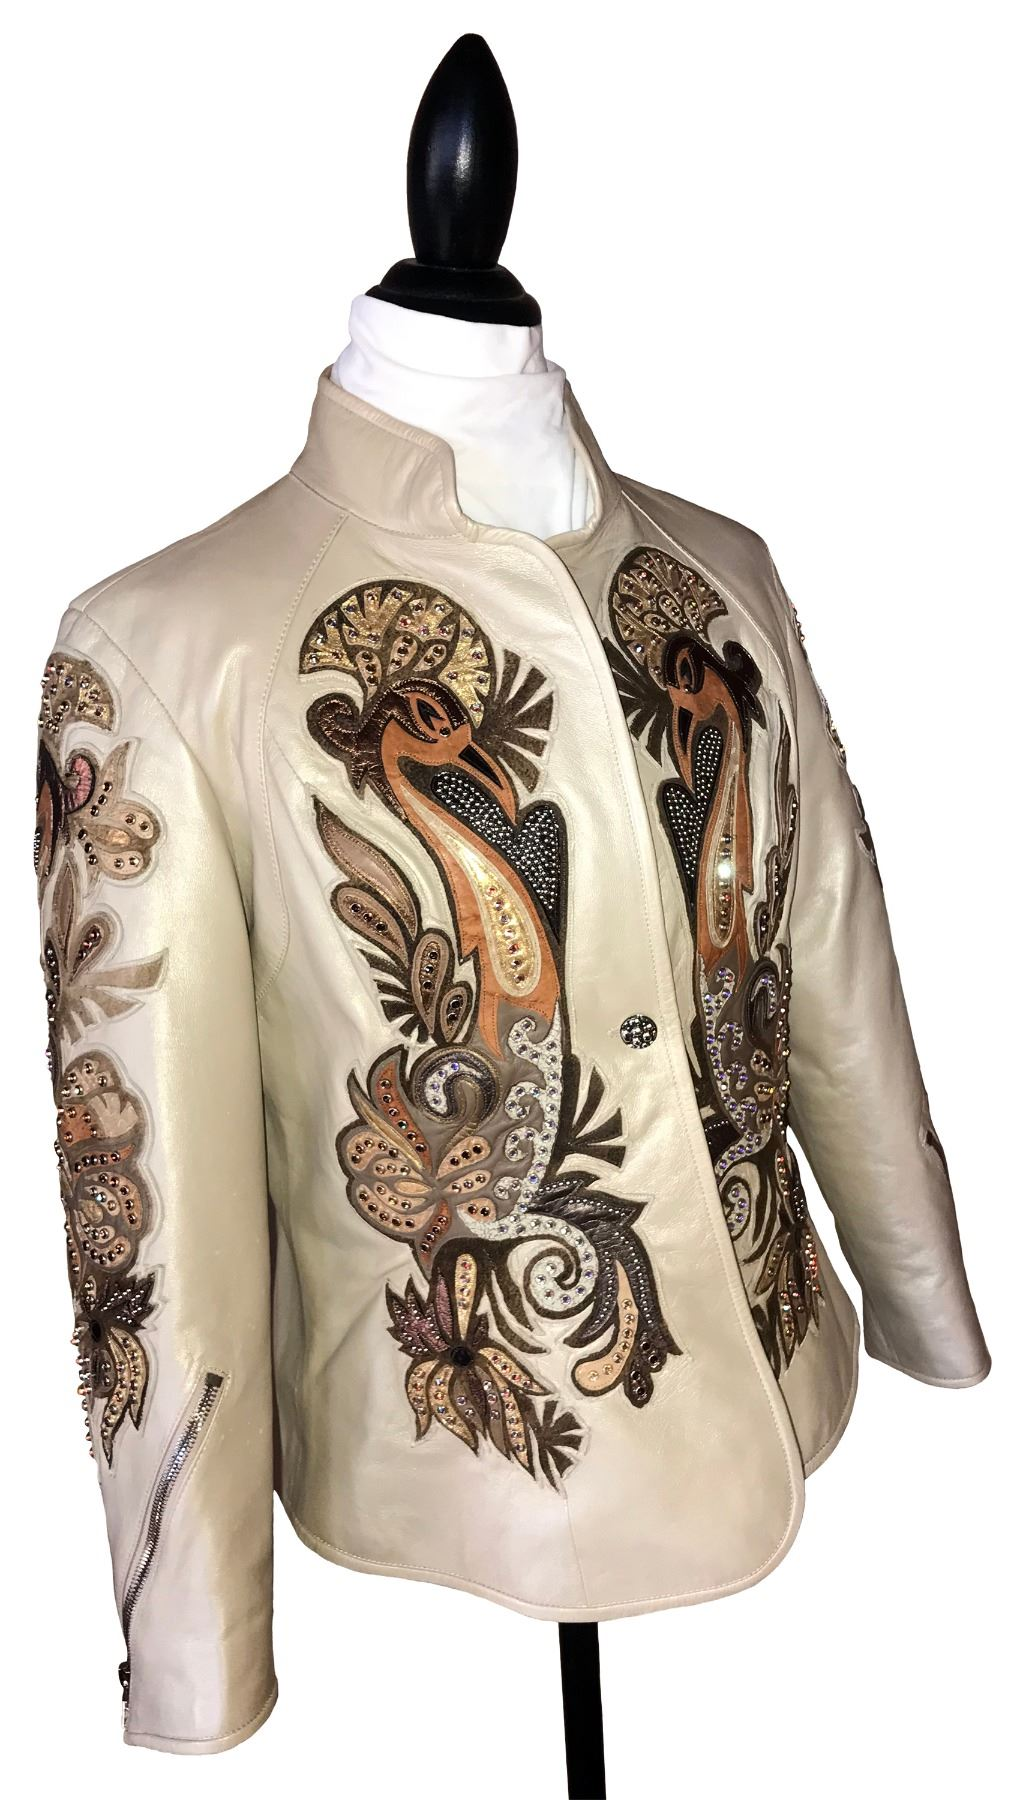 VICKY CARNIVAL RAW EDGE JACKET (Italian leather w/Swarovski Crystals) (100% FULLY DONATED) LIONNE ST